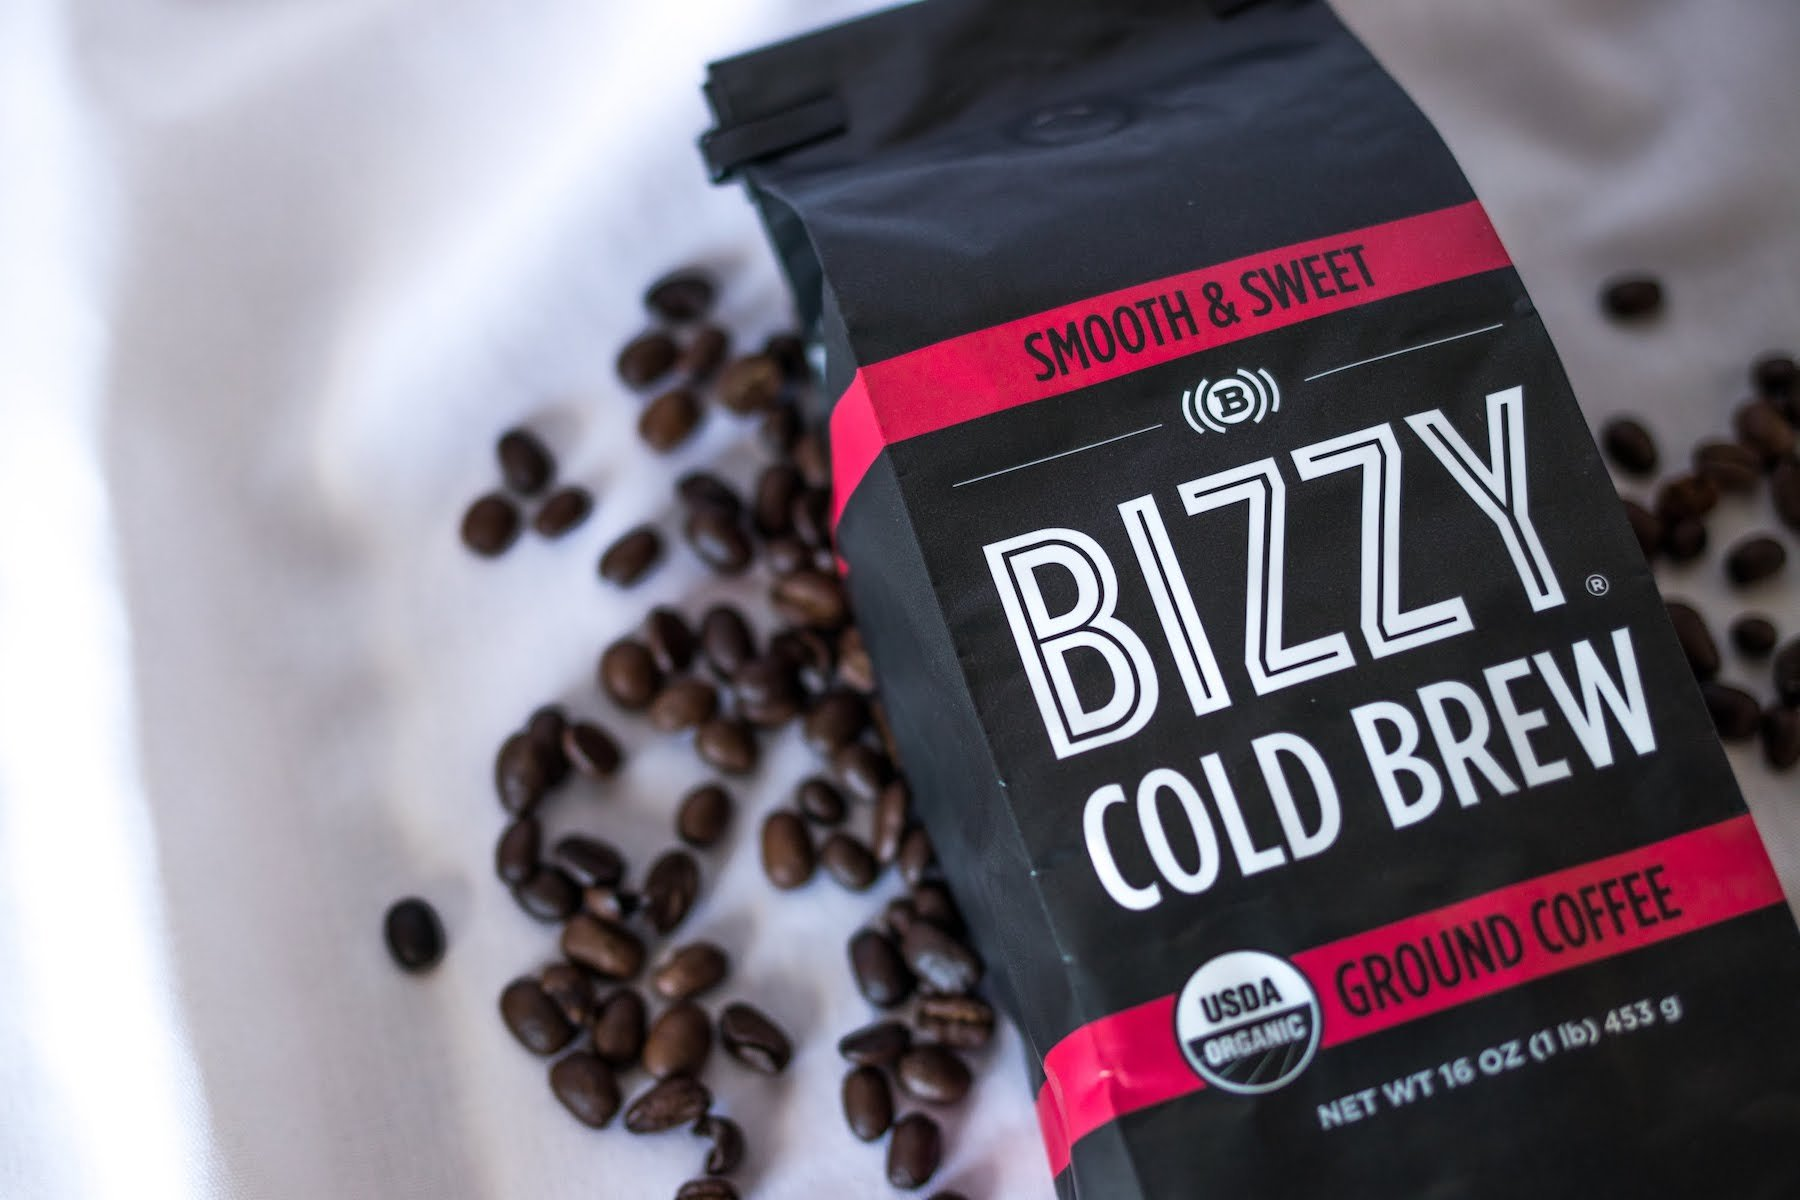 Bizzy Organic Cold Brew Coffee - Smooth & Sweet Blend - Coarse Ground Coffee - 1 Pound by Bizzy (Image #5)